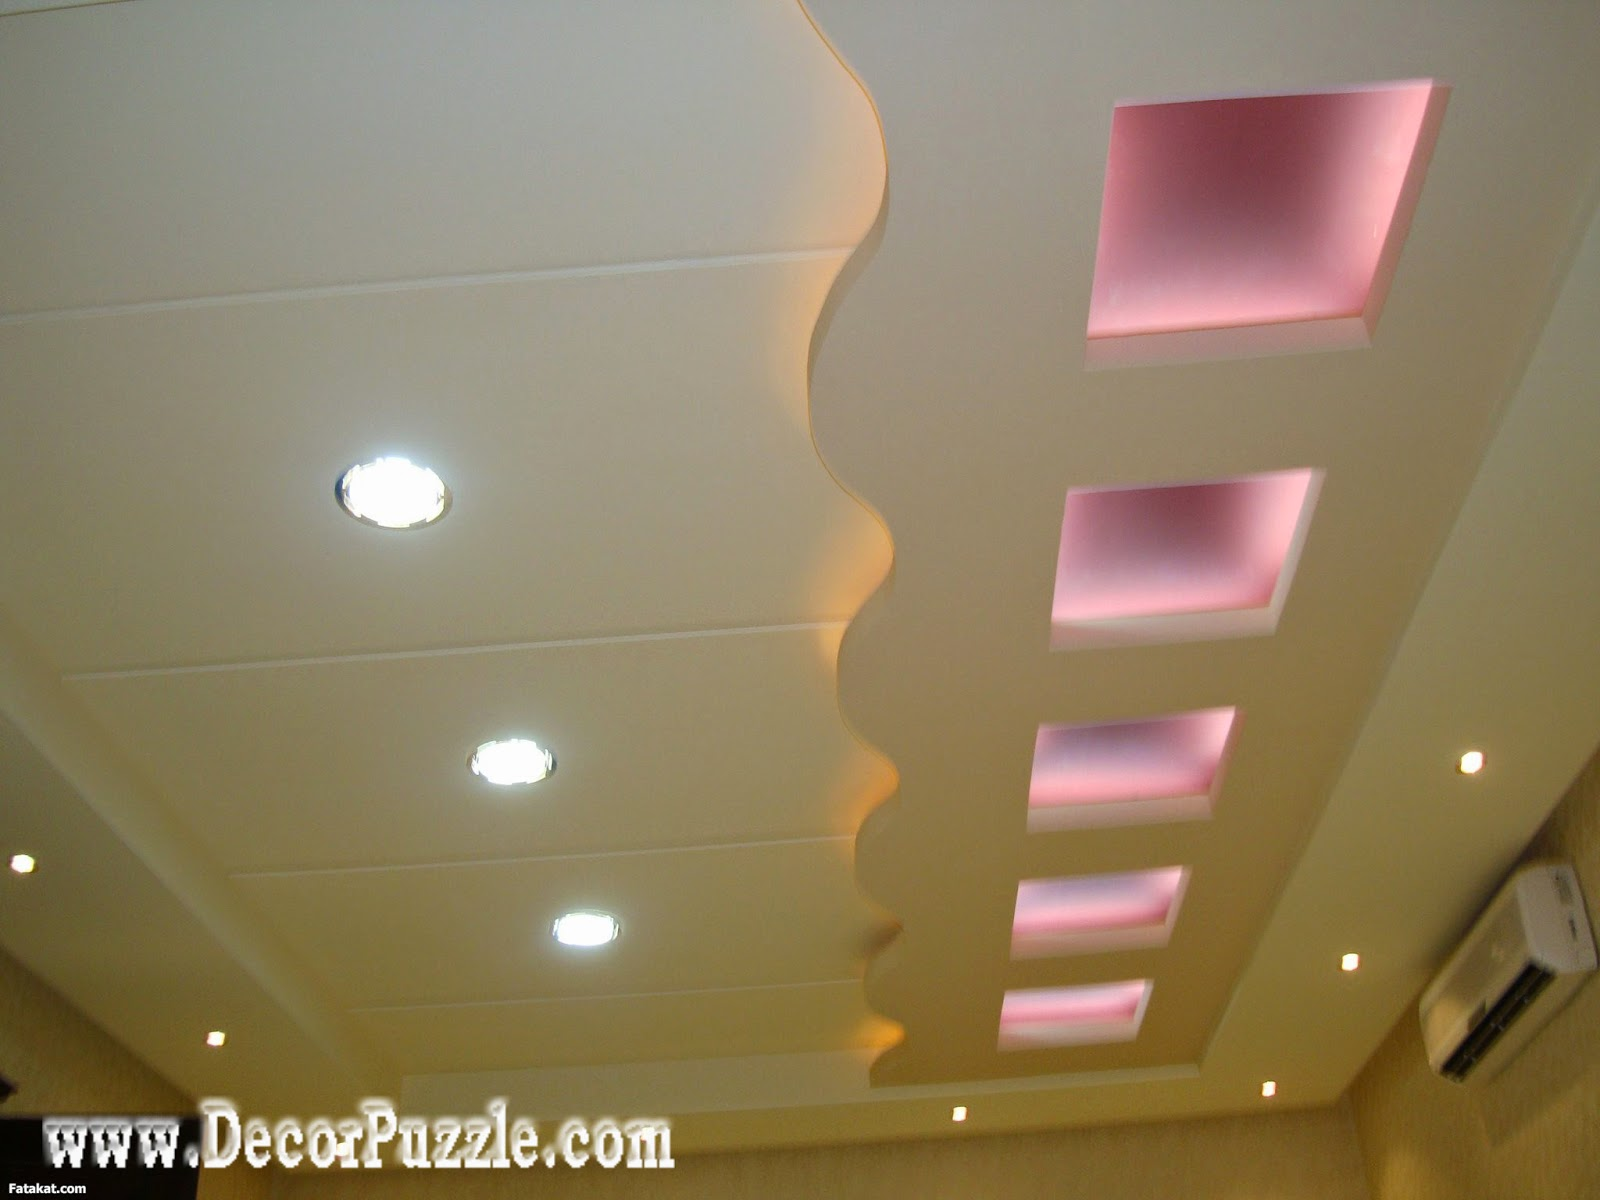 New Design Ceiling Lights : Latest pop false ceiling design catalogog with led